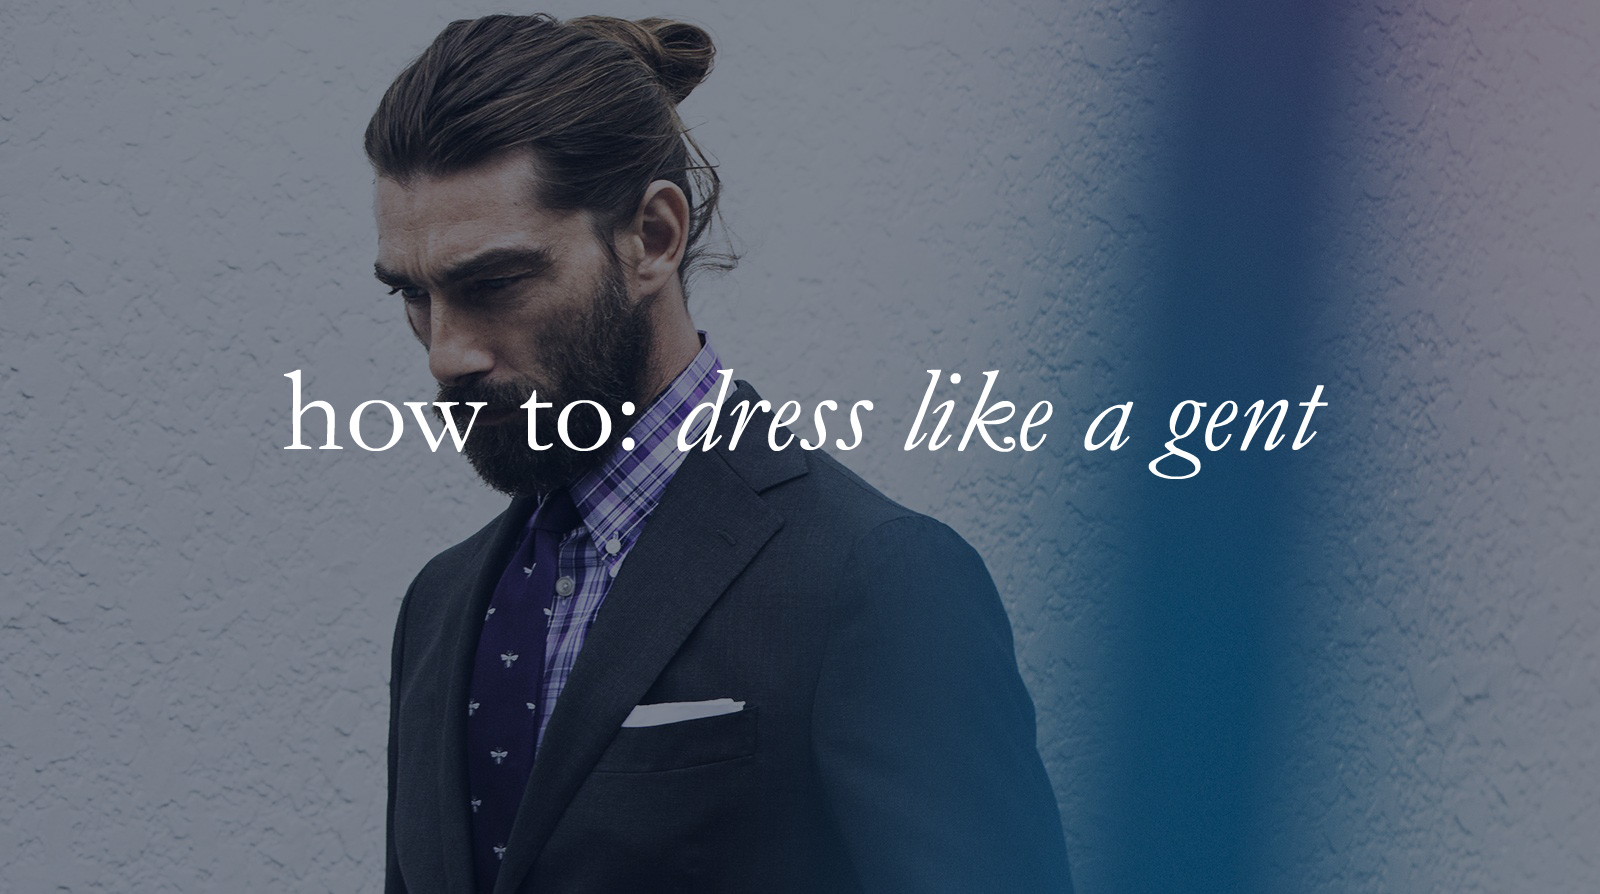 How to: dress like a gent